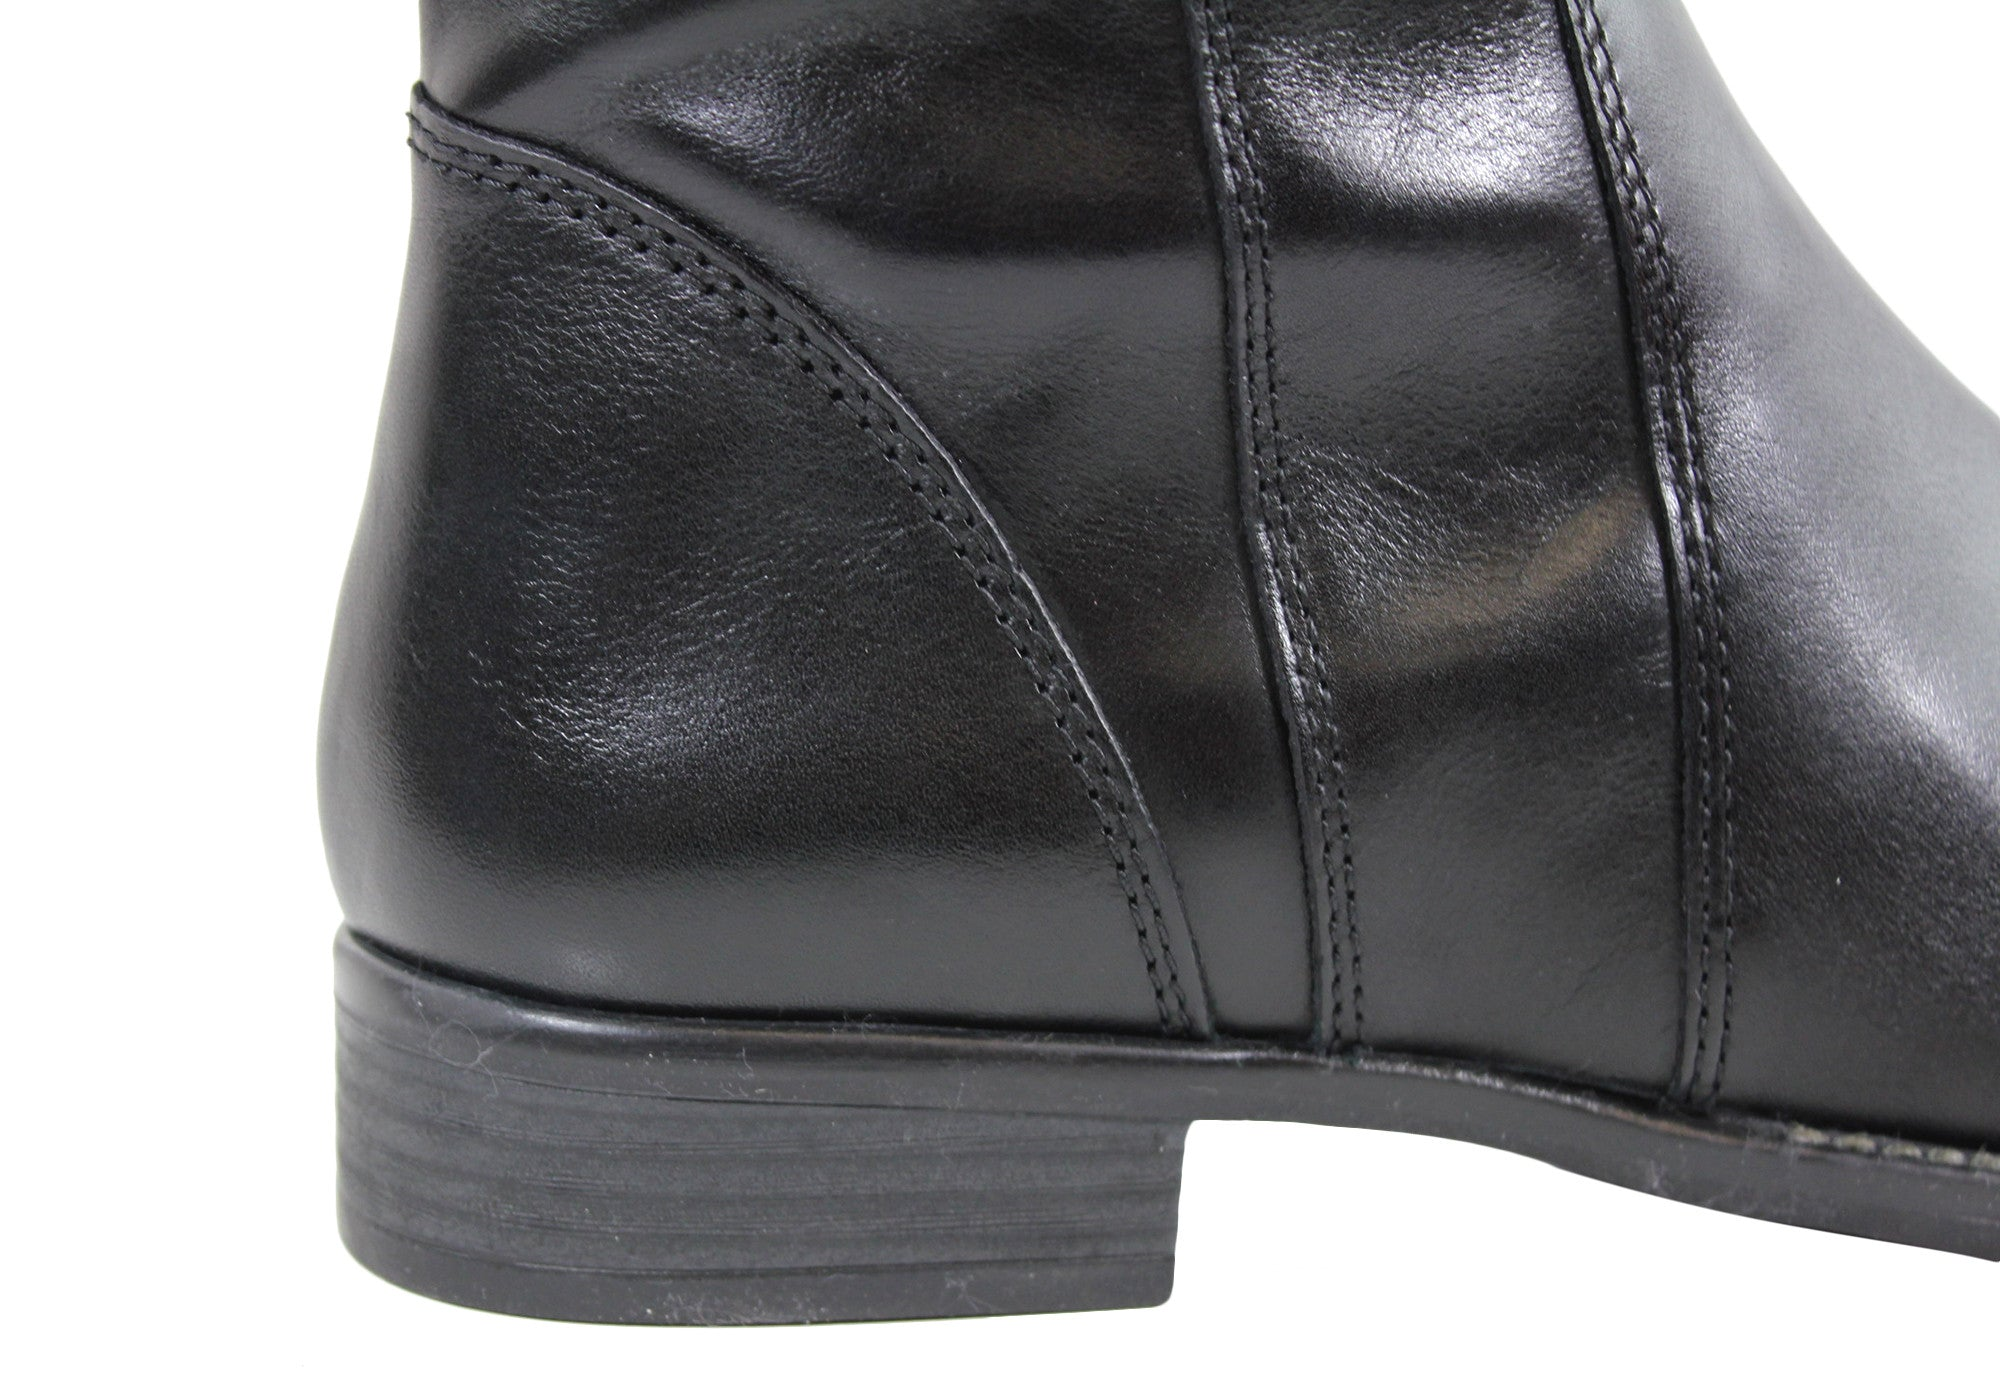 Gino Ventori Eagle Womens Leather Knee High Boots